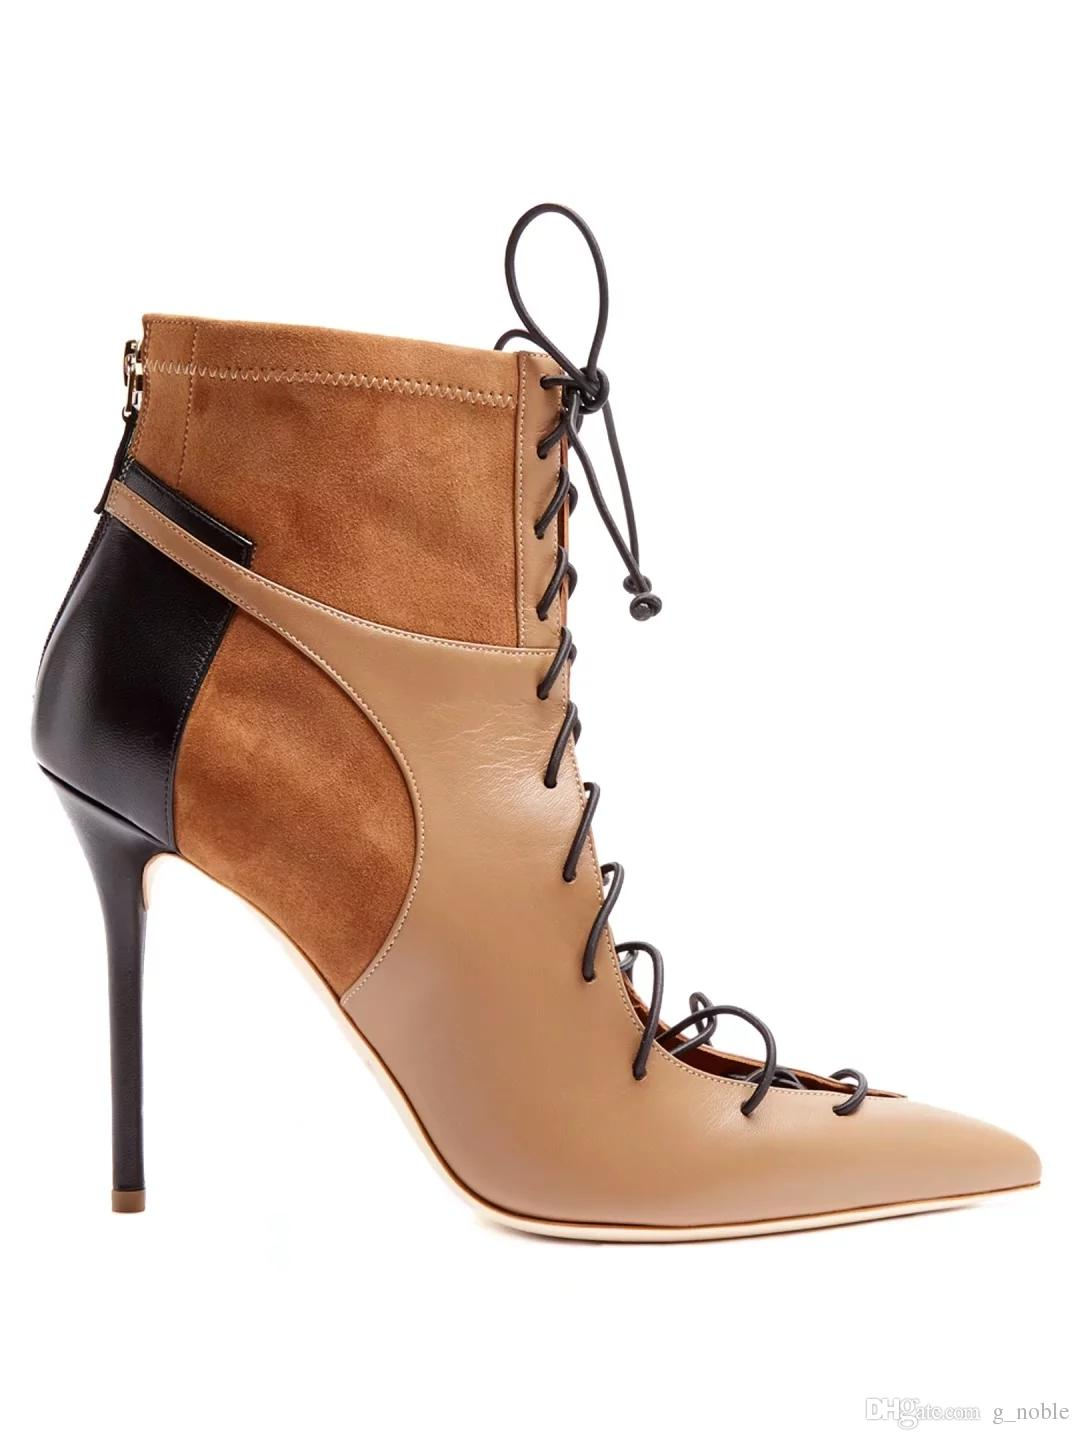 3e4ba830567 Suede Patchwork Stiletto Heel Pointy Lace Up Strappy High Heel Boots Sexy  Hollow Out Trendy Ankle Boots Fashion Shoes Women Cat Boots Shoe Sale From  G noble ...